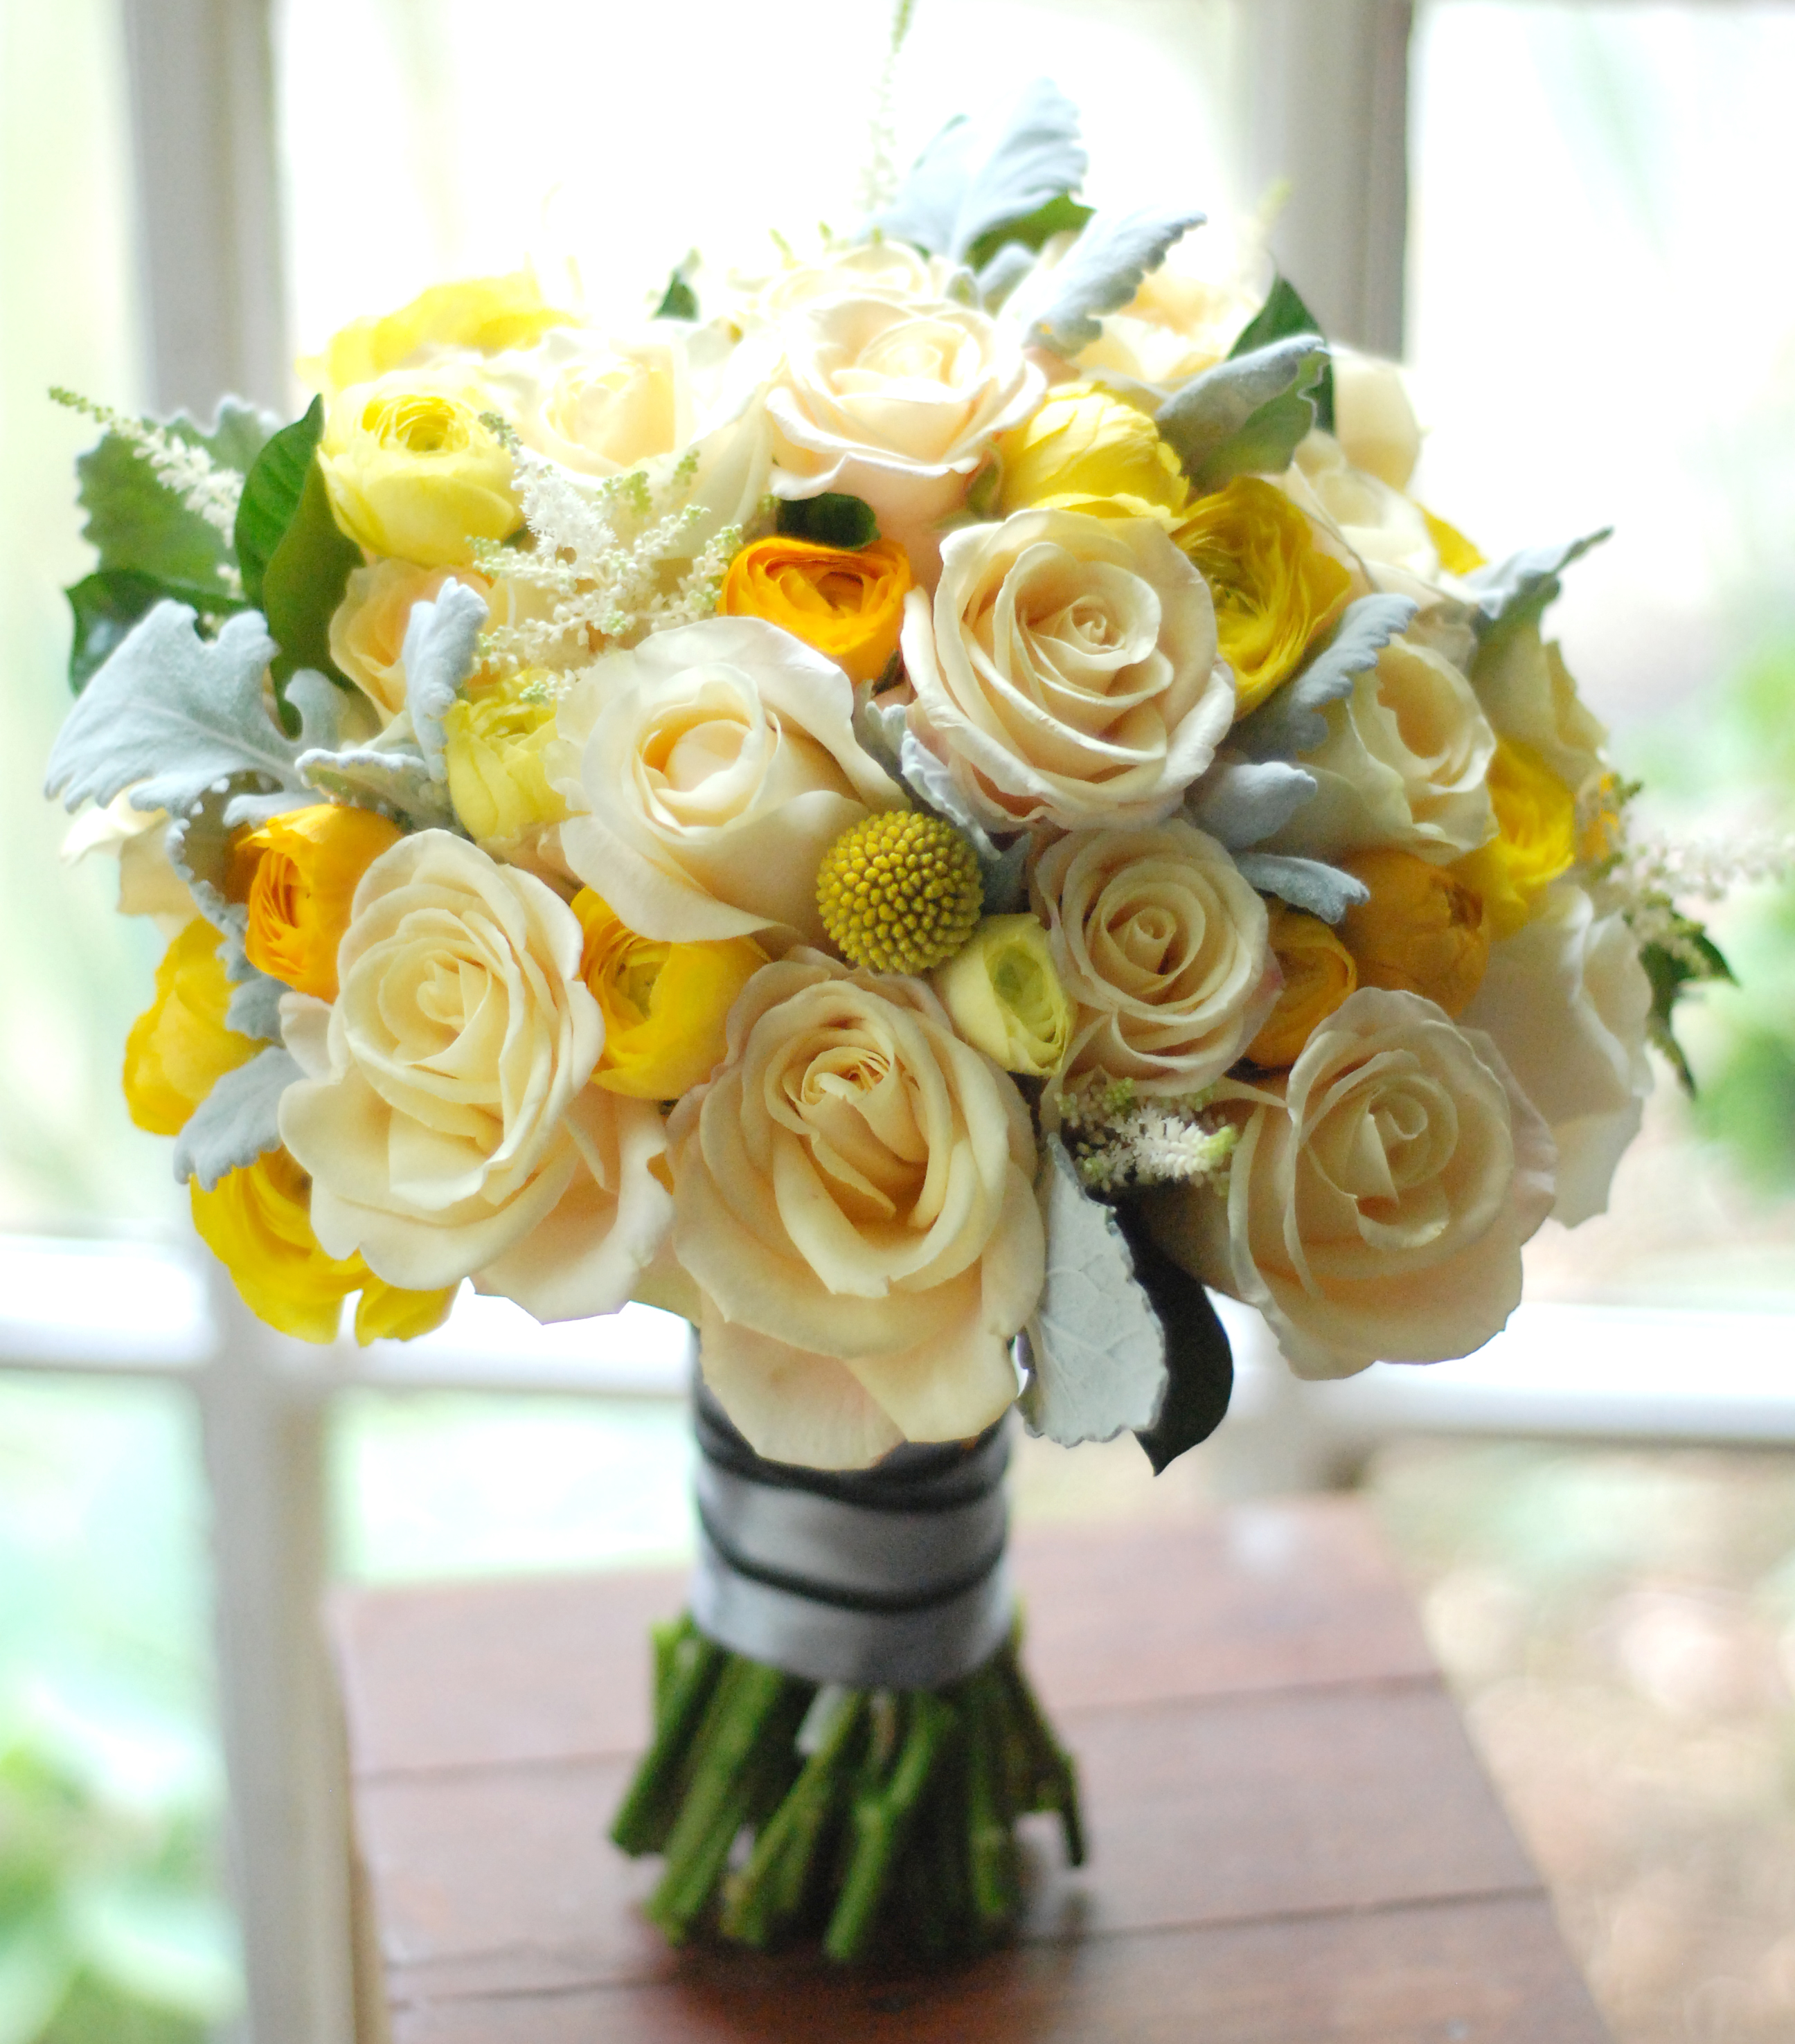 Wedding Flowers Yellow Roses: The Floral Studio In Baltimore